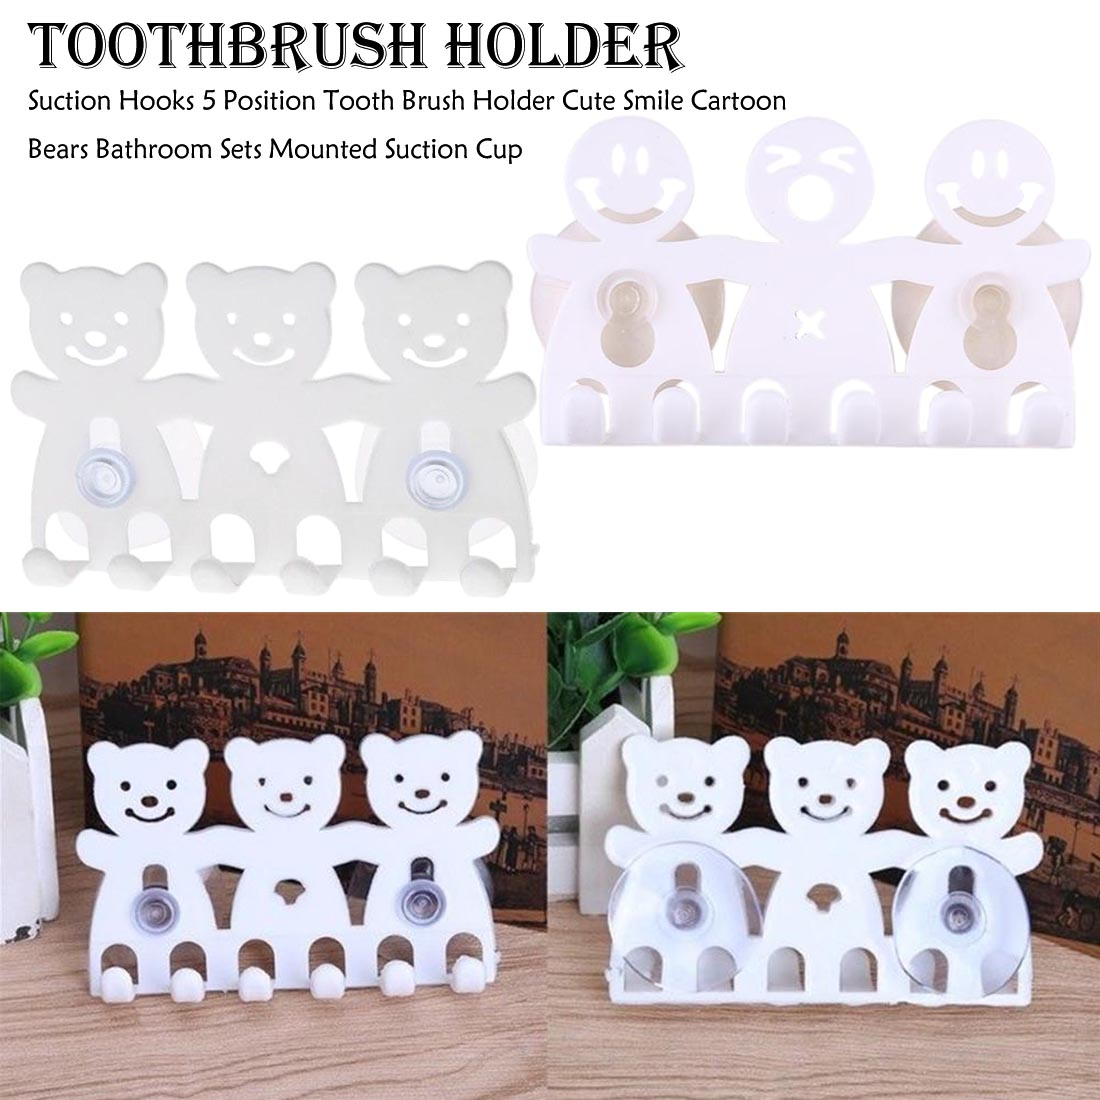 1pcs Wall Mounted Suction Cup Hooks 5 Position Toothbrush Holder Cute Smile Cartoon Bears Bathroom Sets